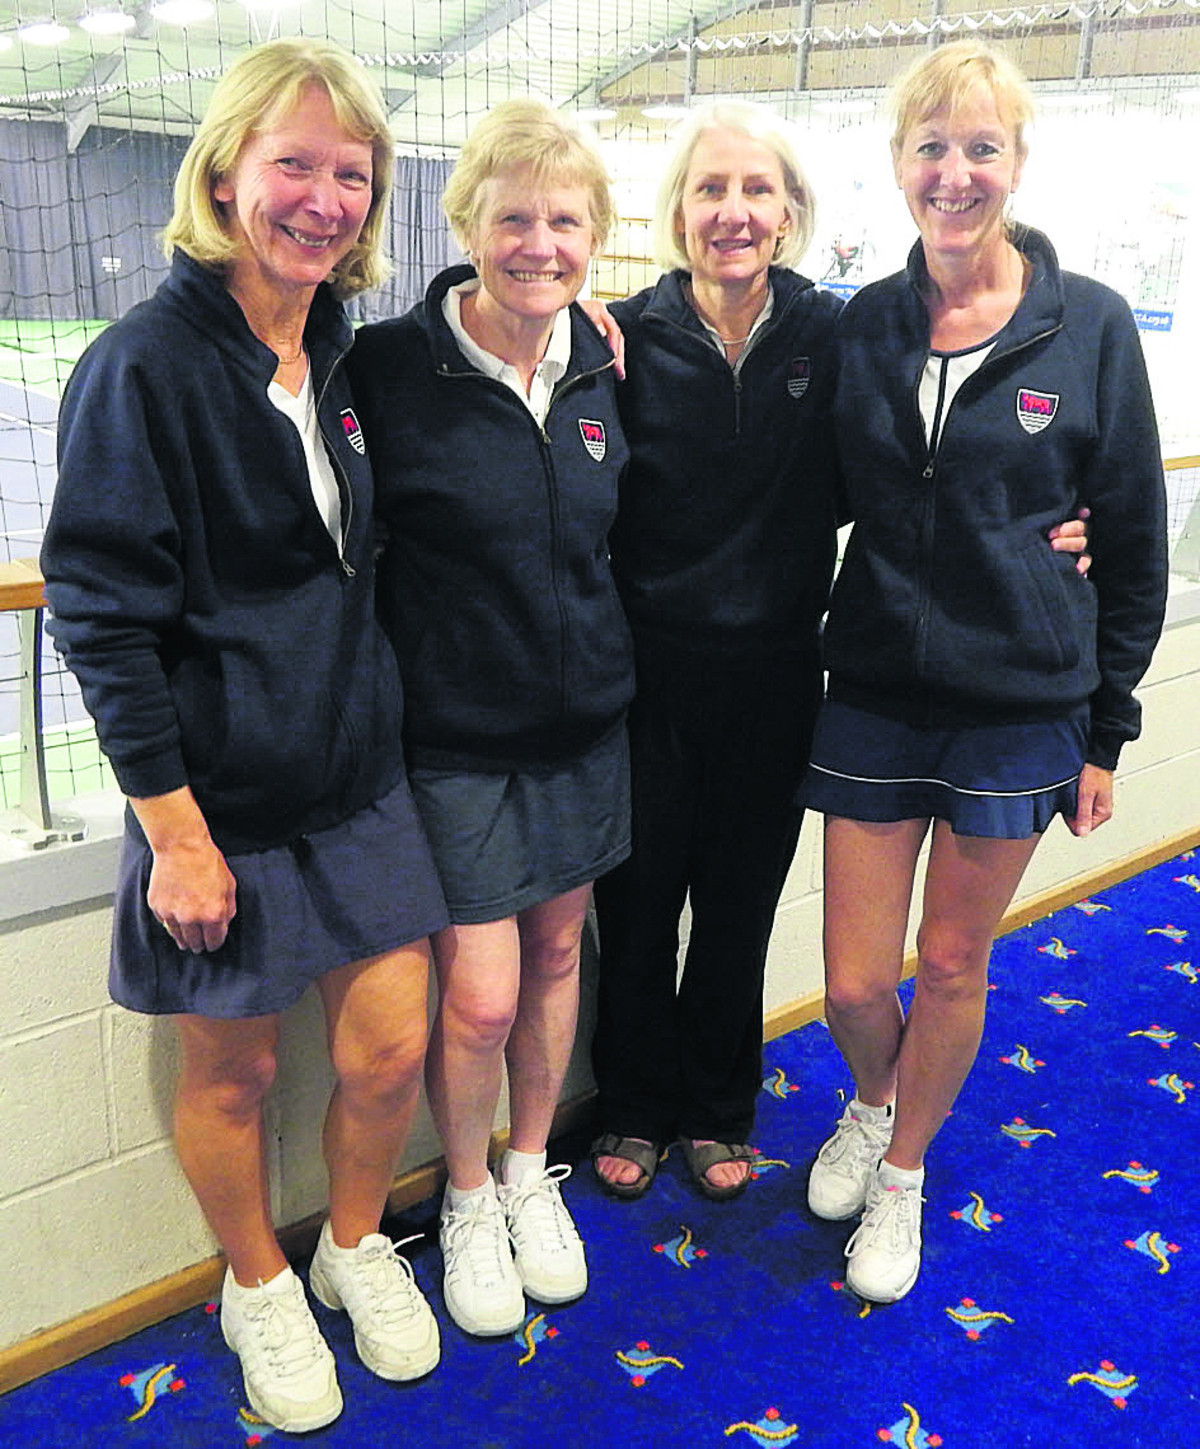 Oxfordshire's victorious women. From left: Ruth Ballantyne, Liz Gilkes, Sarah Widdowson, Ana Cogg